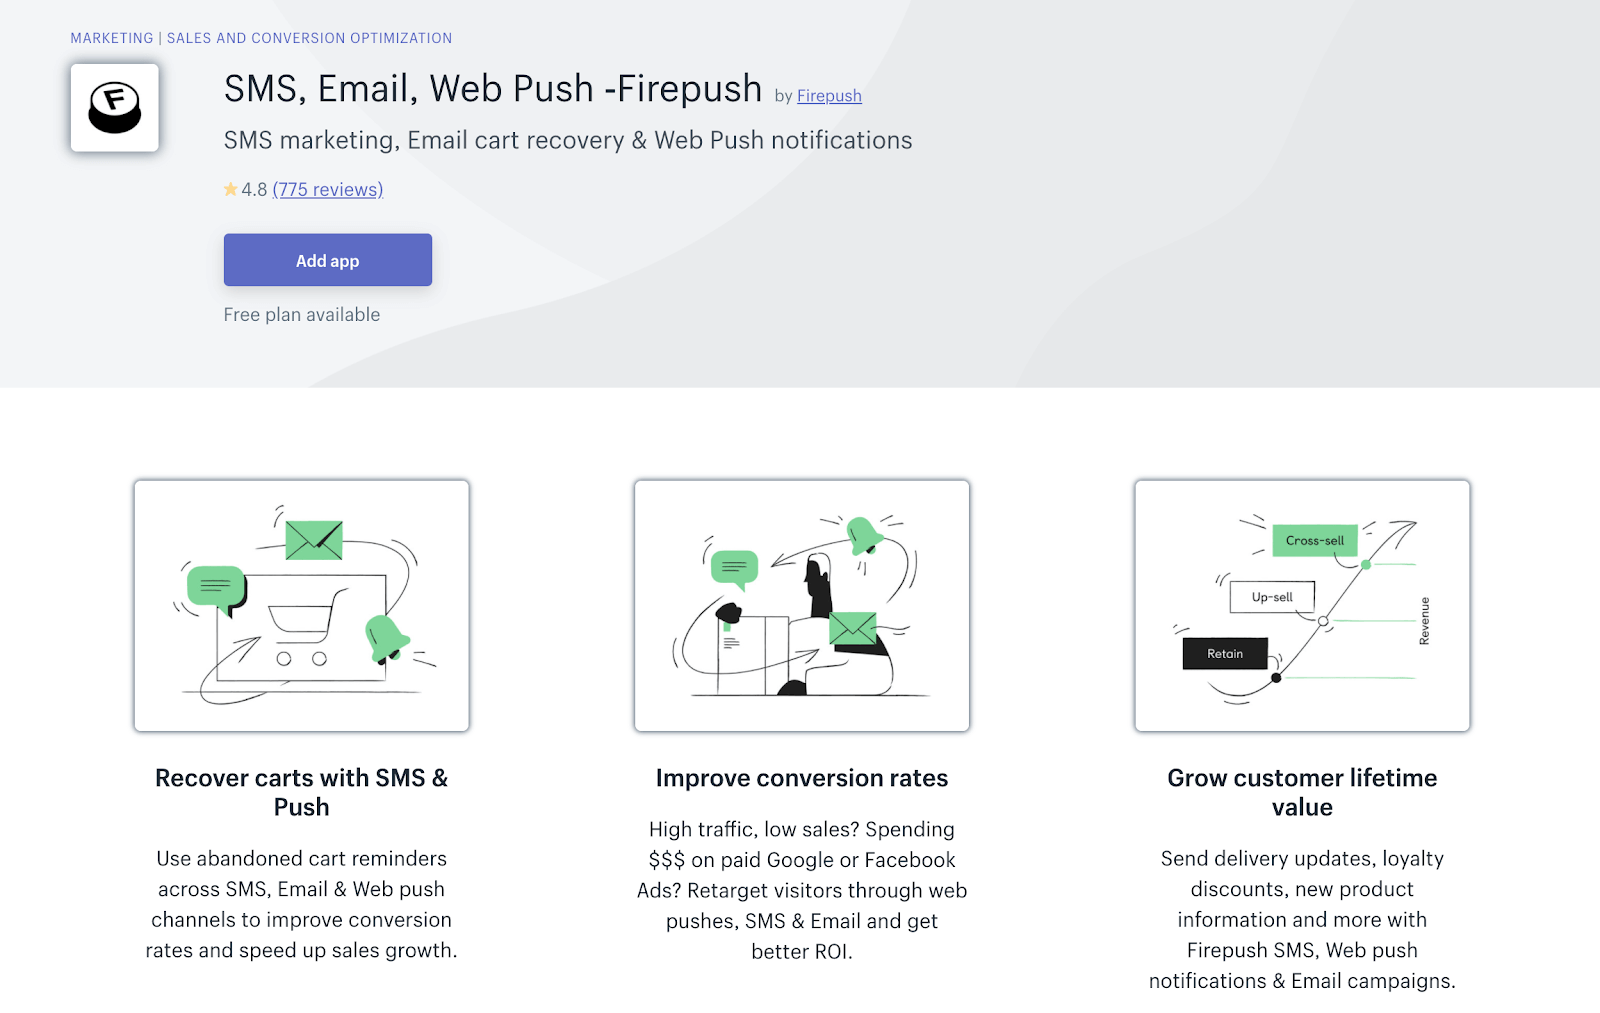 Firepush email, web push and SMS retargeting in one application